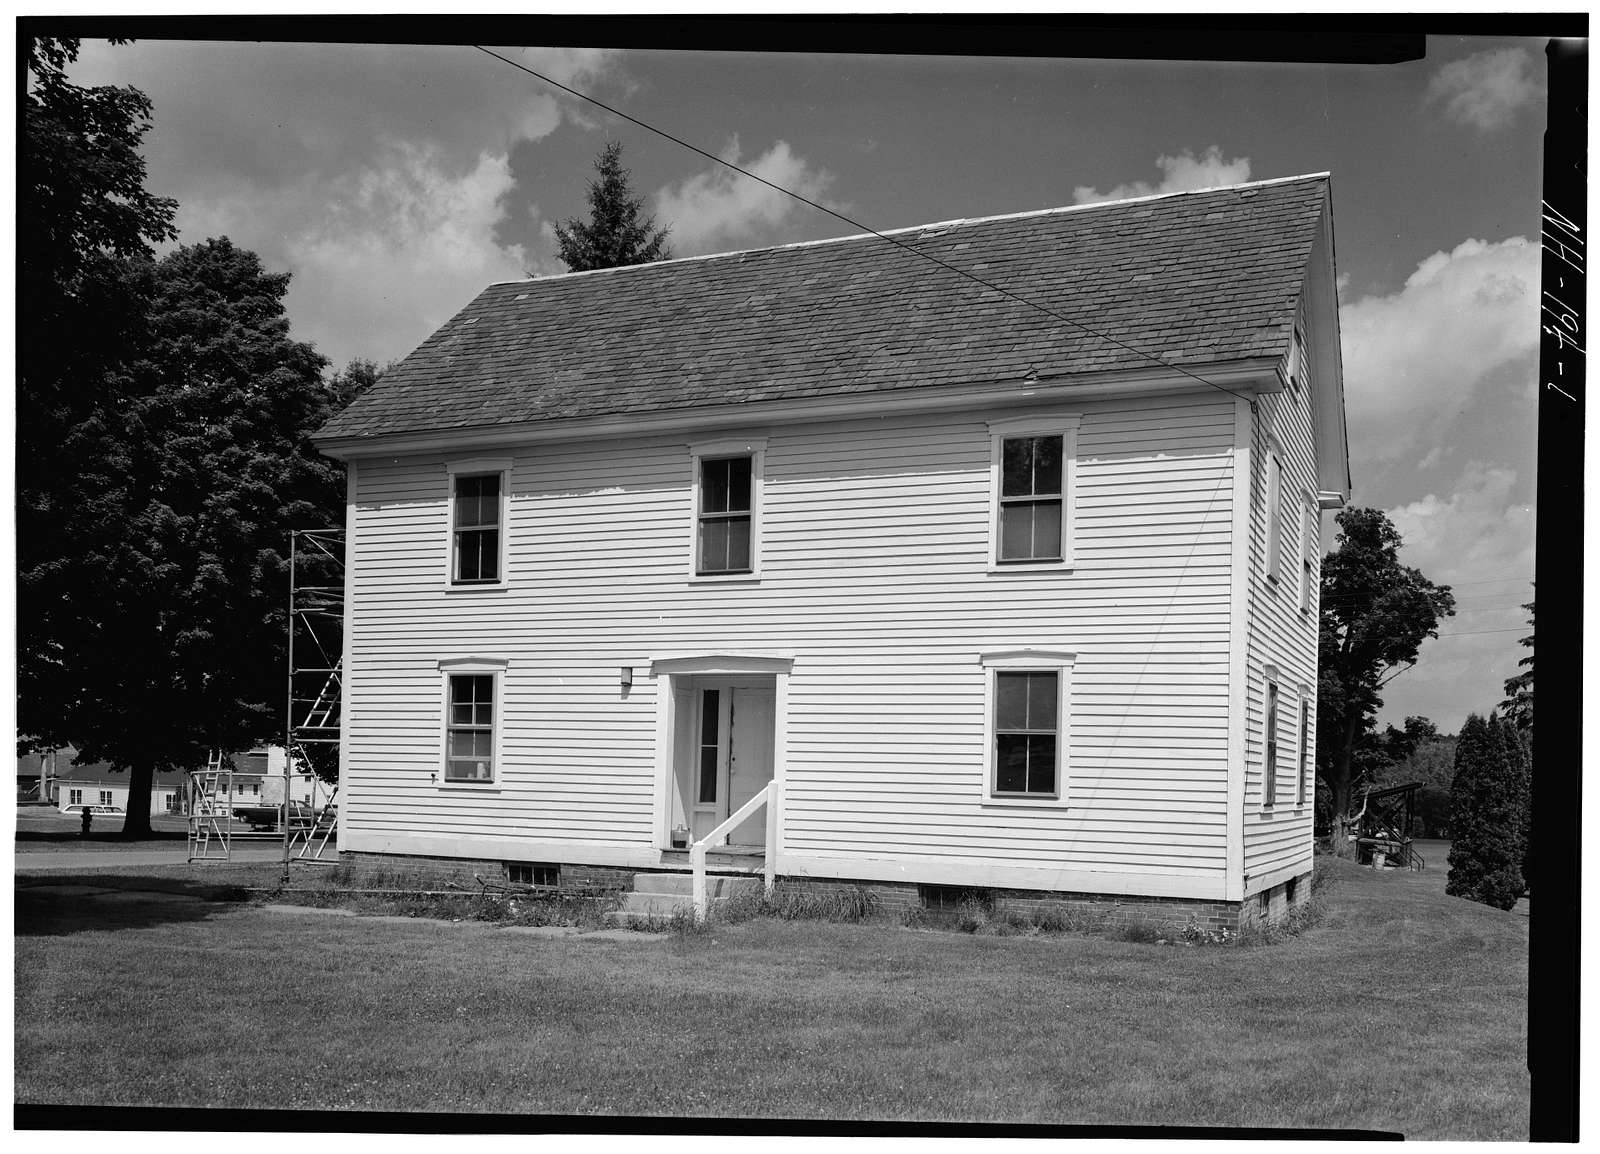 Shaker Ministry's Shop, State Route 4A, Enfield, Grafton County, NH